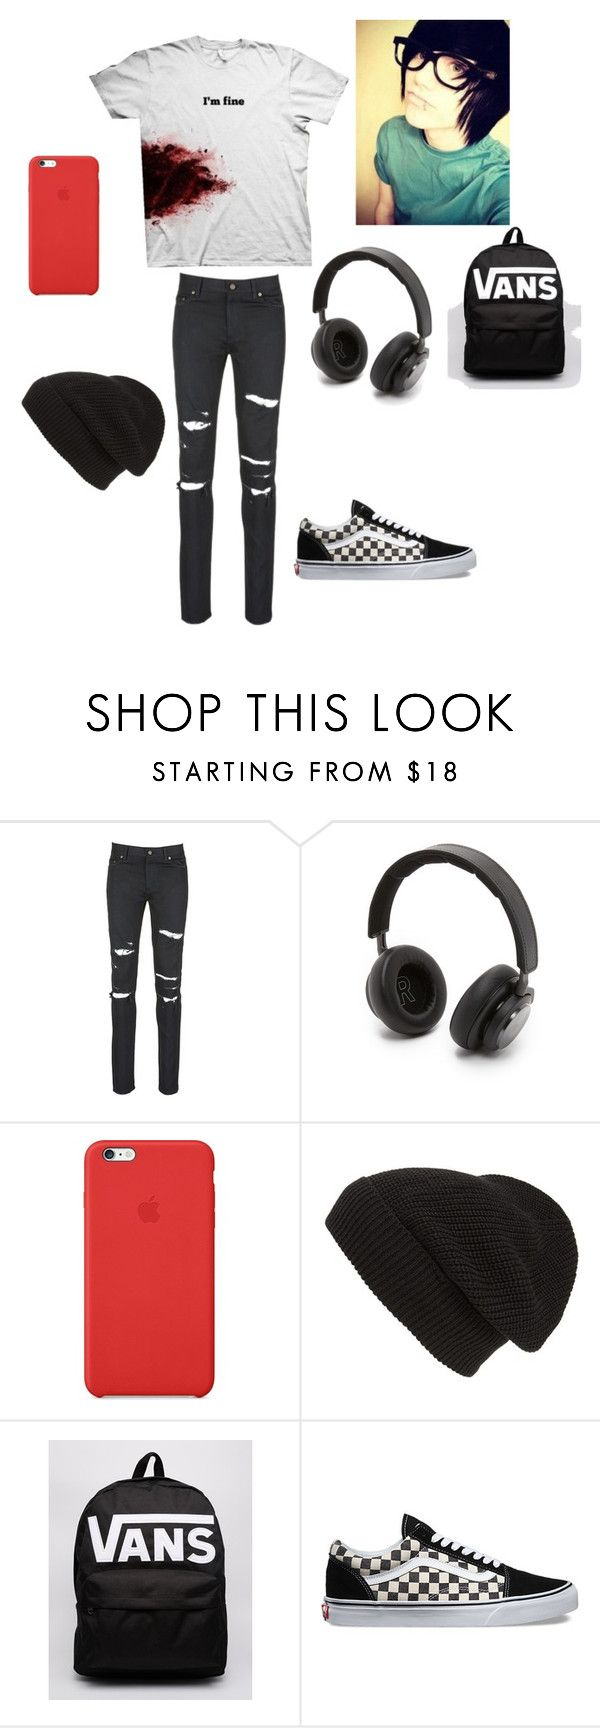 """Untitled #33"" by kawaiikitsune ❤ liked on Polyvore featuring Yves Saint Laurent, B&O Play, Apple, Phase 3, Vans, mens, men, men's wear, mens wear and male"